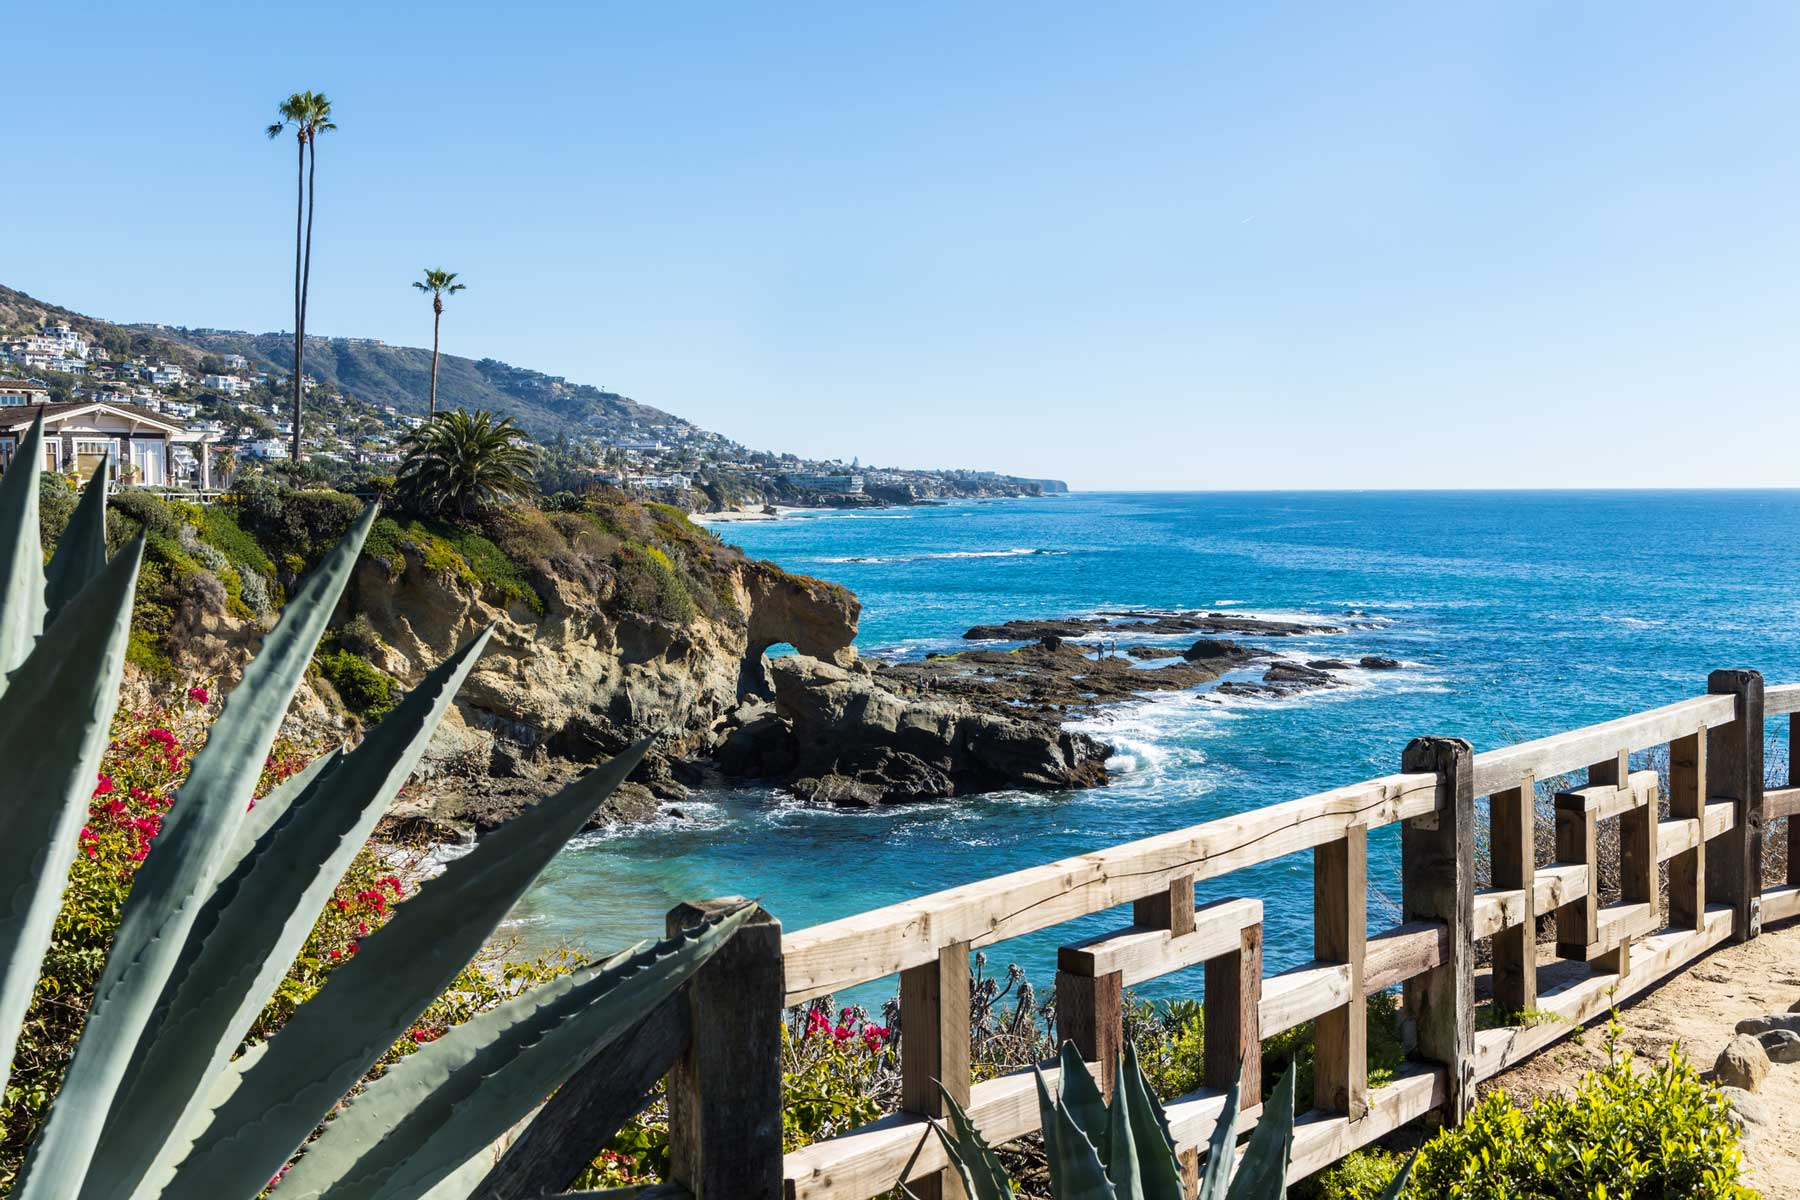 Southern California landscape, Pacific Ocean view